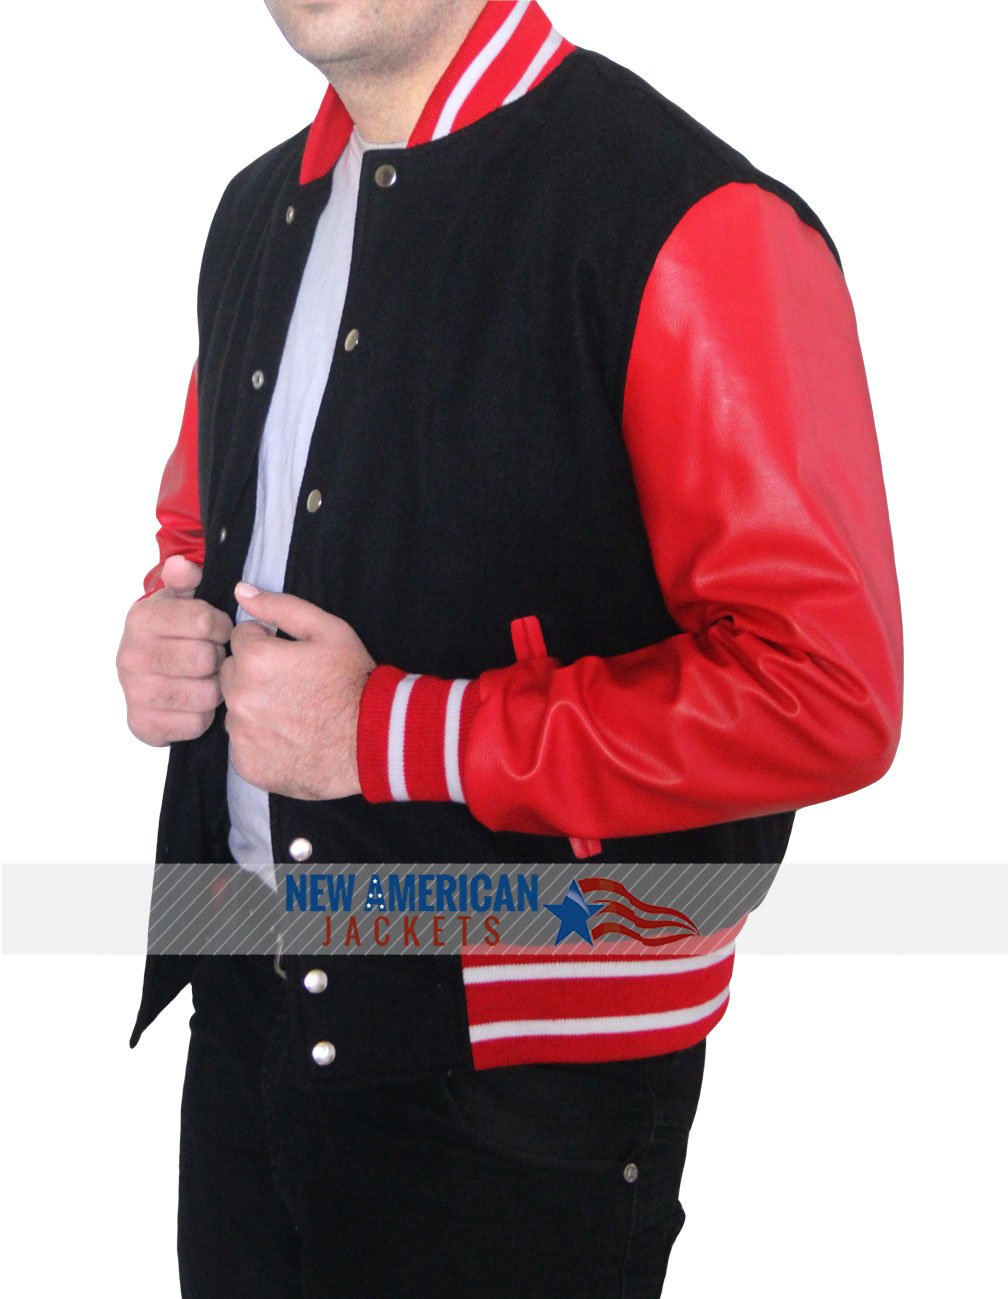 jackets letter jacket emporium letterman and black jacket new american jackets 173